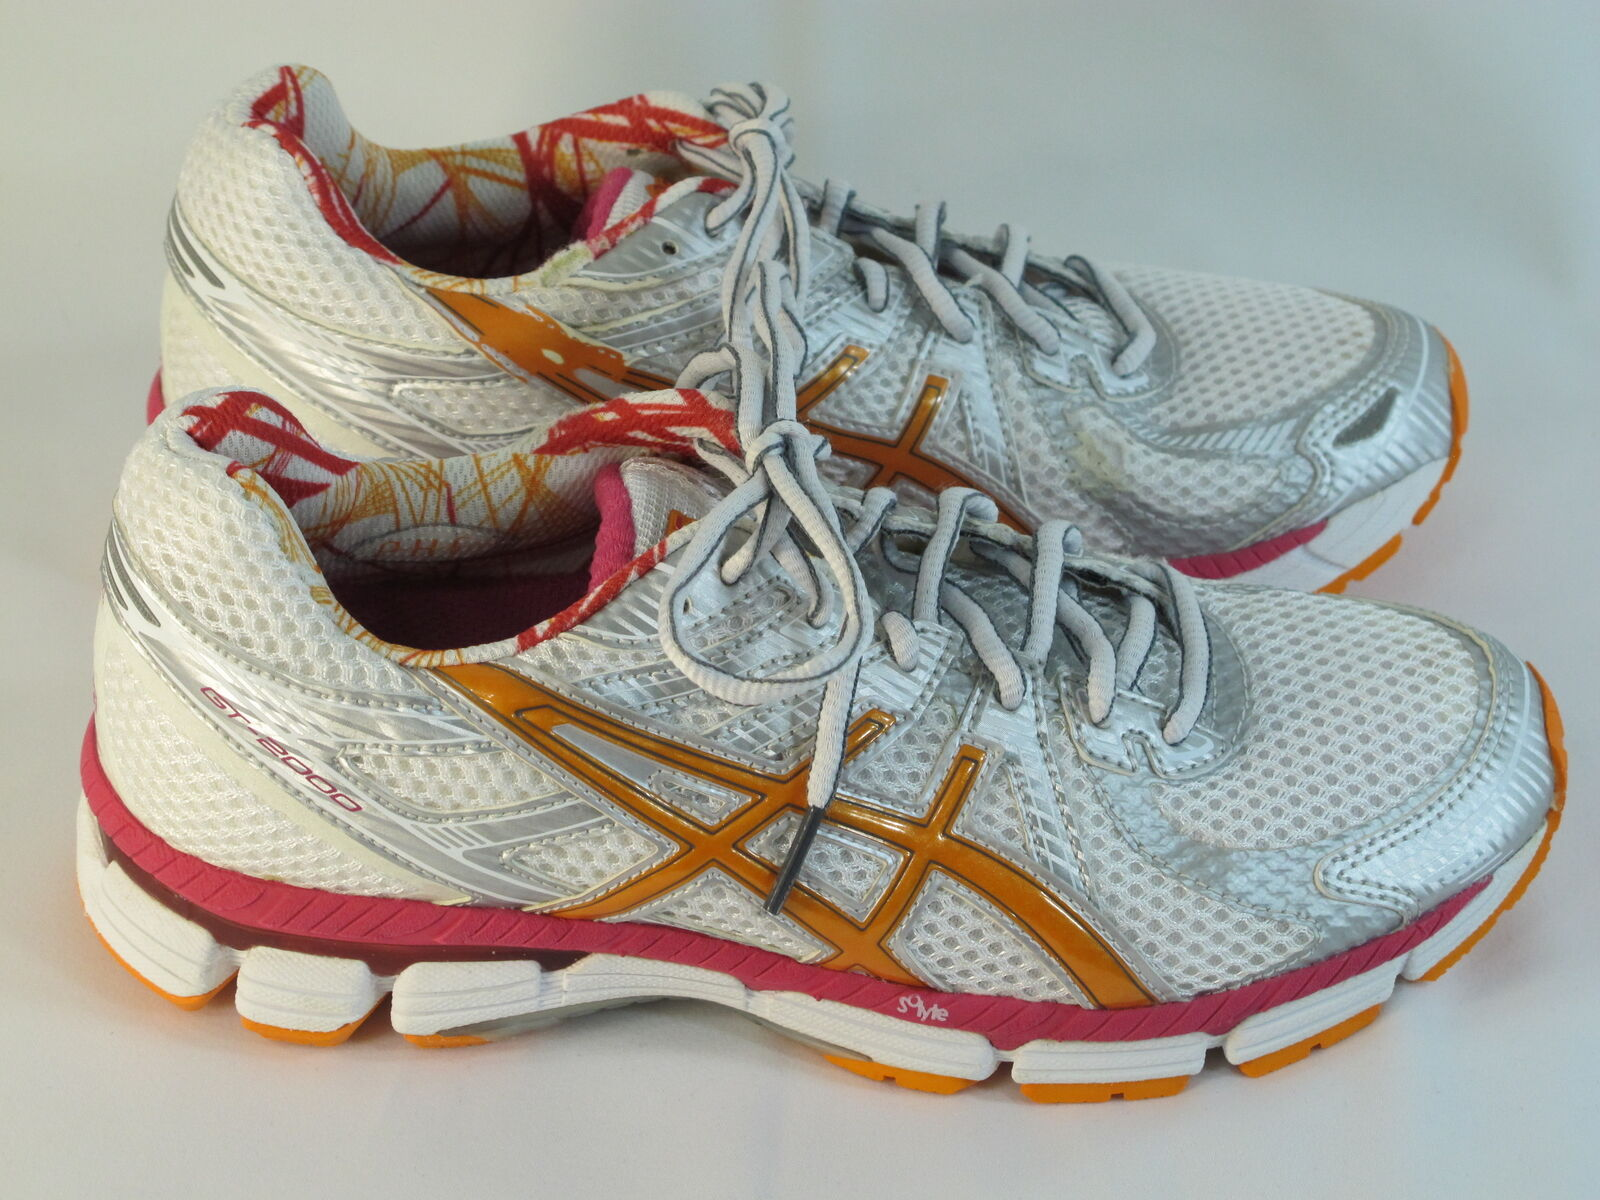 ASICS GT 2000 Running Shoes Women's Comfortable best-selling model of the brand